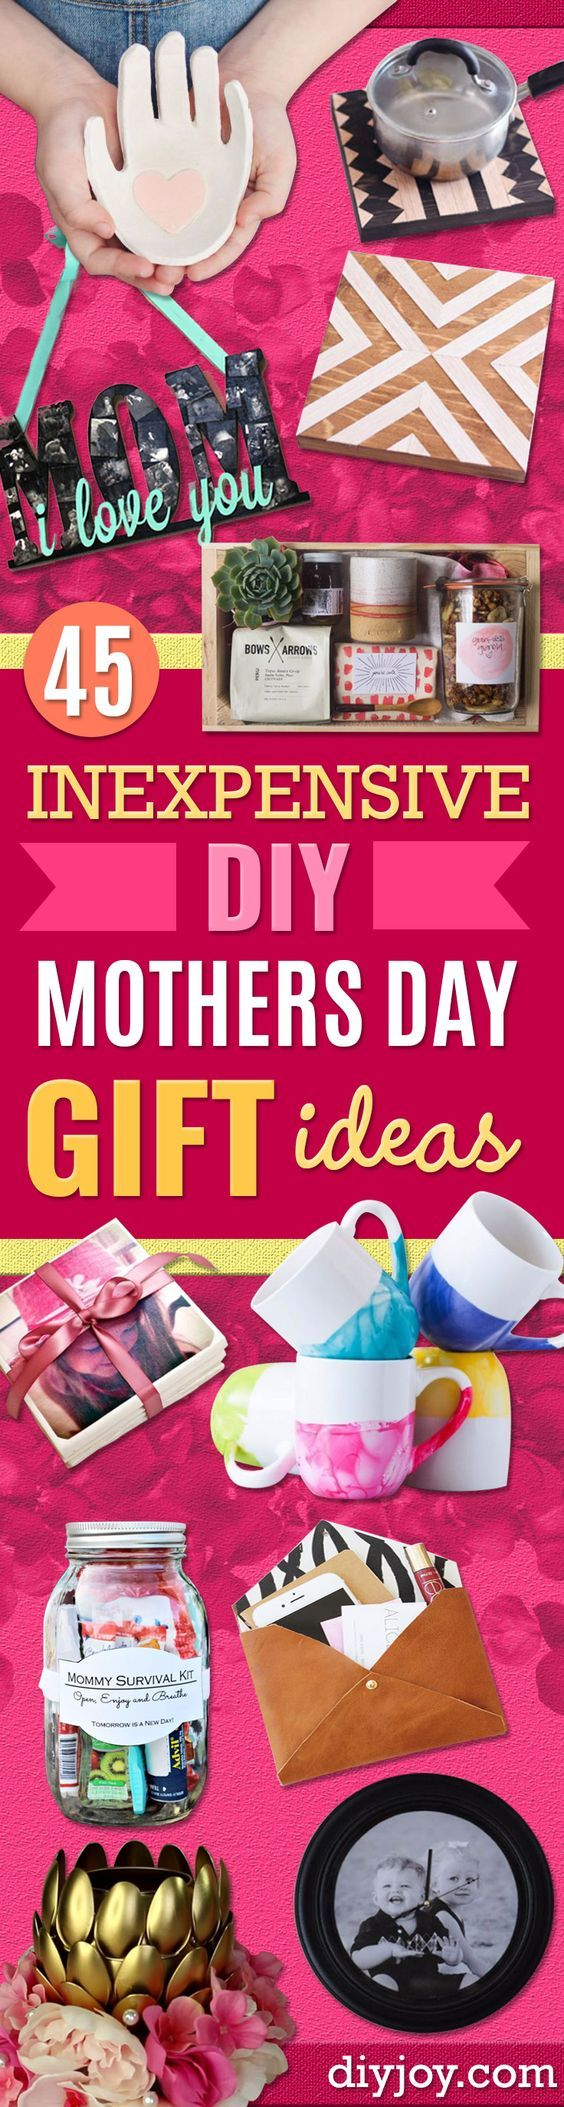 DIY Mothers Day Gift Ideas - Homemade Gifts for Moms - Crafts and Do It Yourself Home Decor, Accessories and Fashion To Make For Mom - Mothers Love Handmade Presents on Mother's Day - DIY Projects and Crafts by DIY JOY http://diyjoy.com/diy-mothers-day-gifts